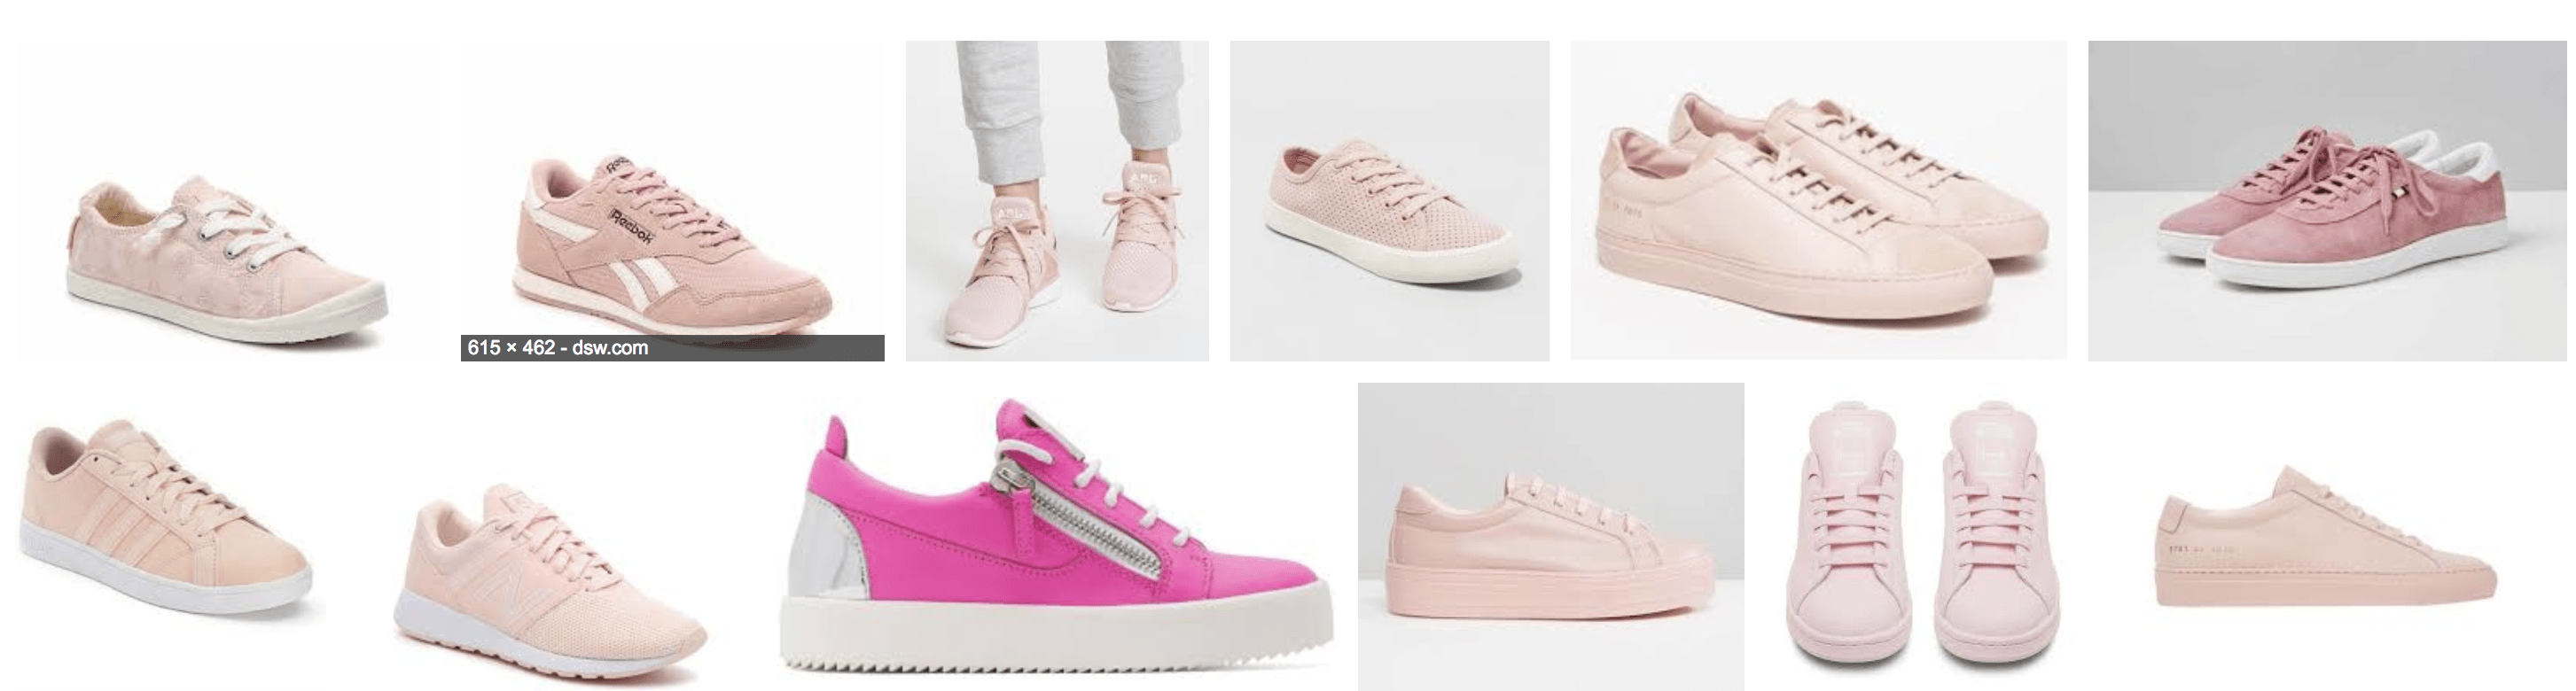 correlations between search terms pink color sneakers